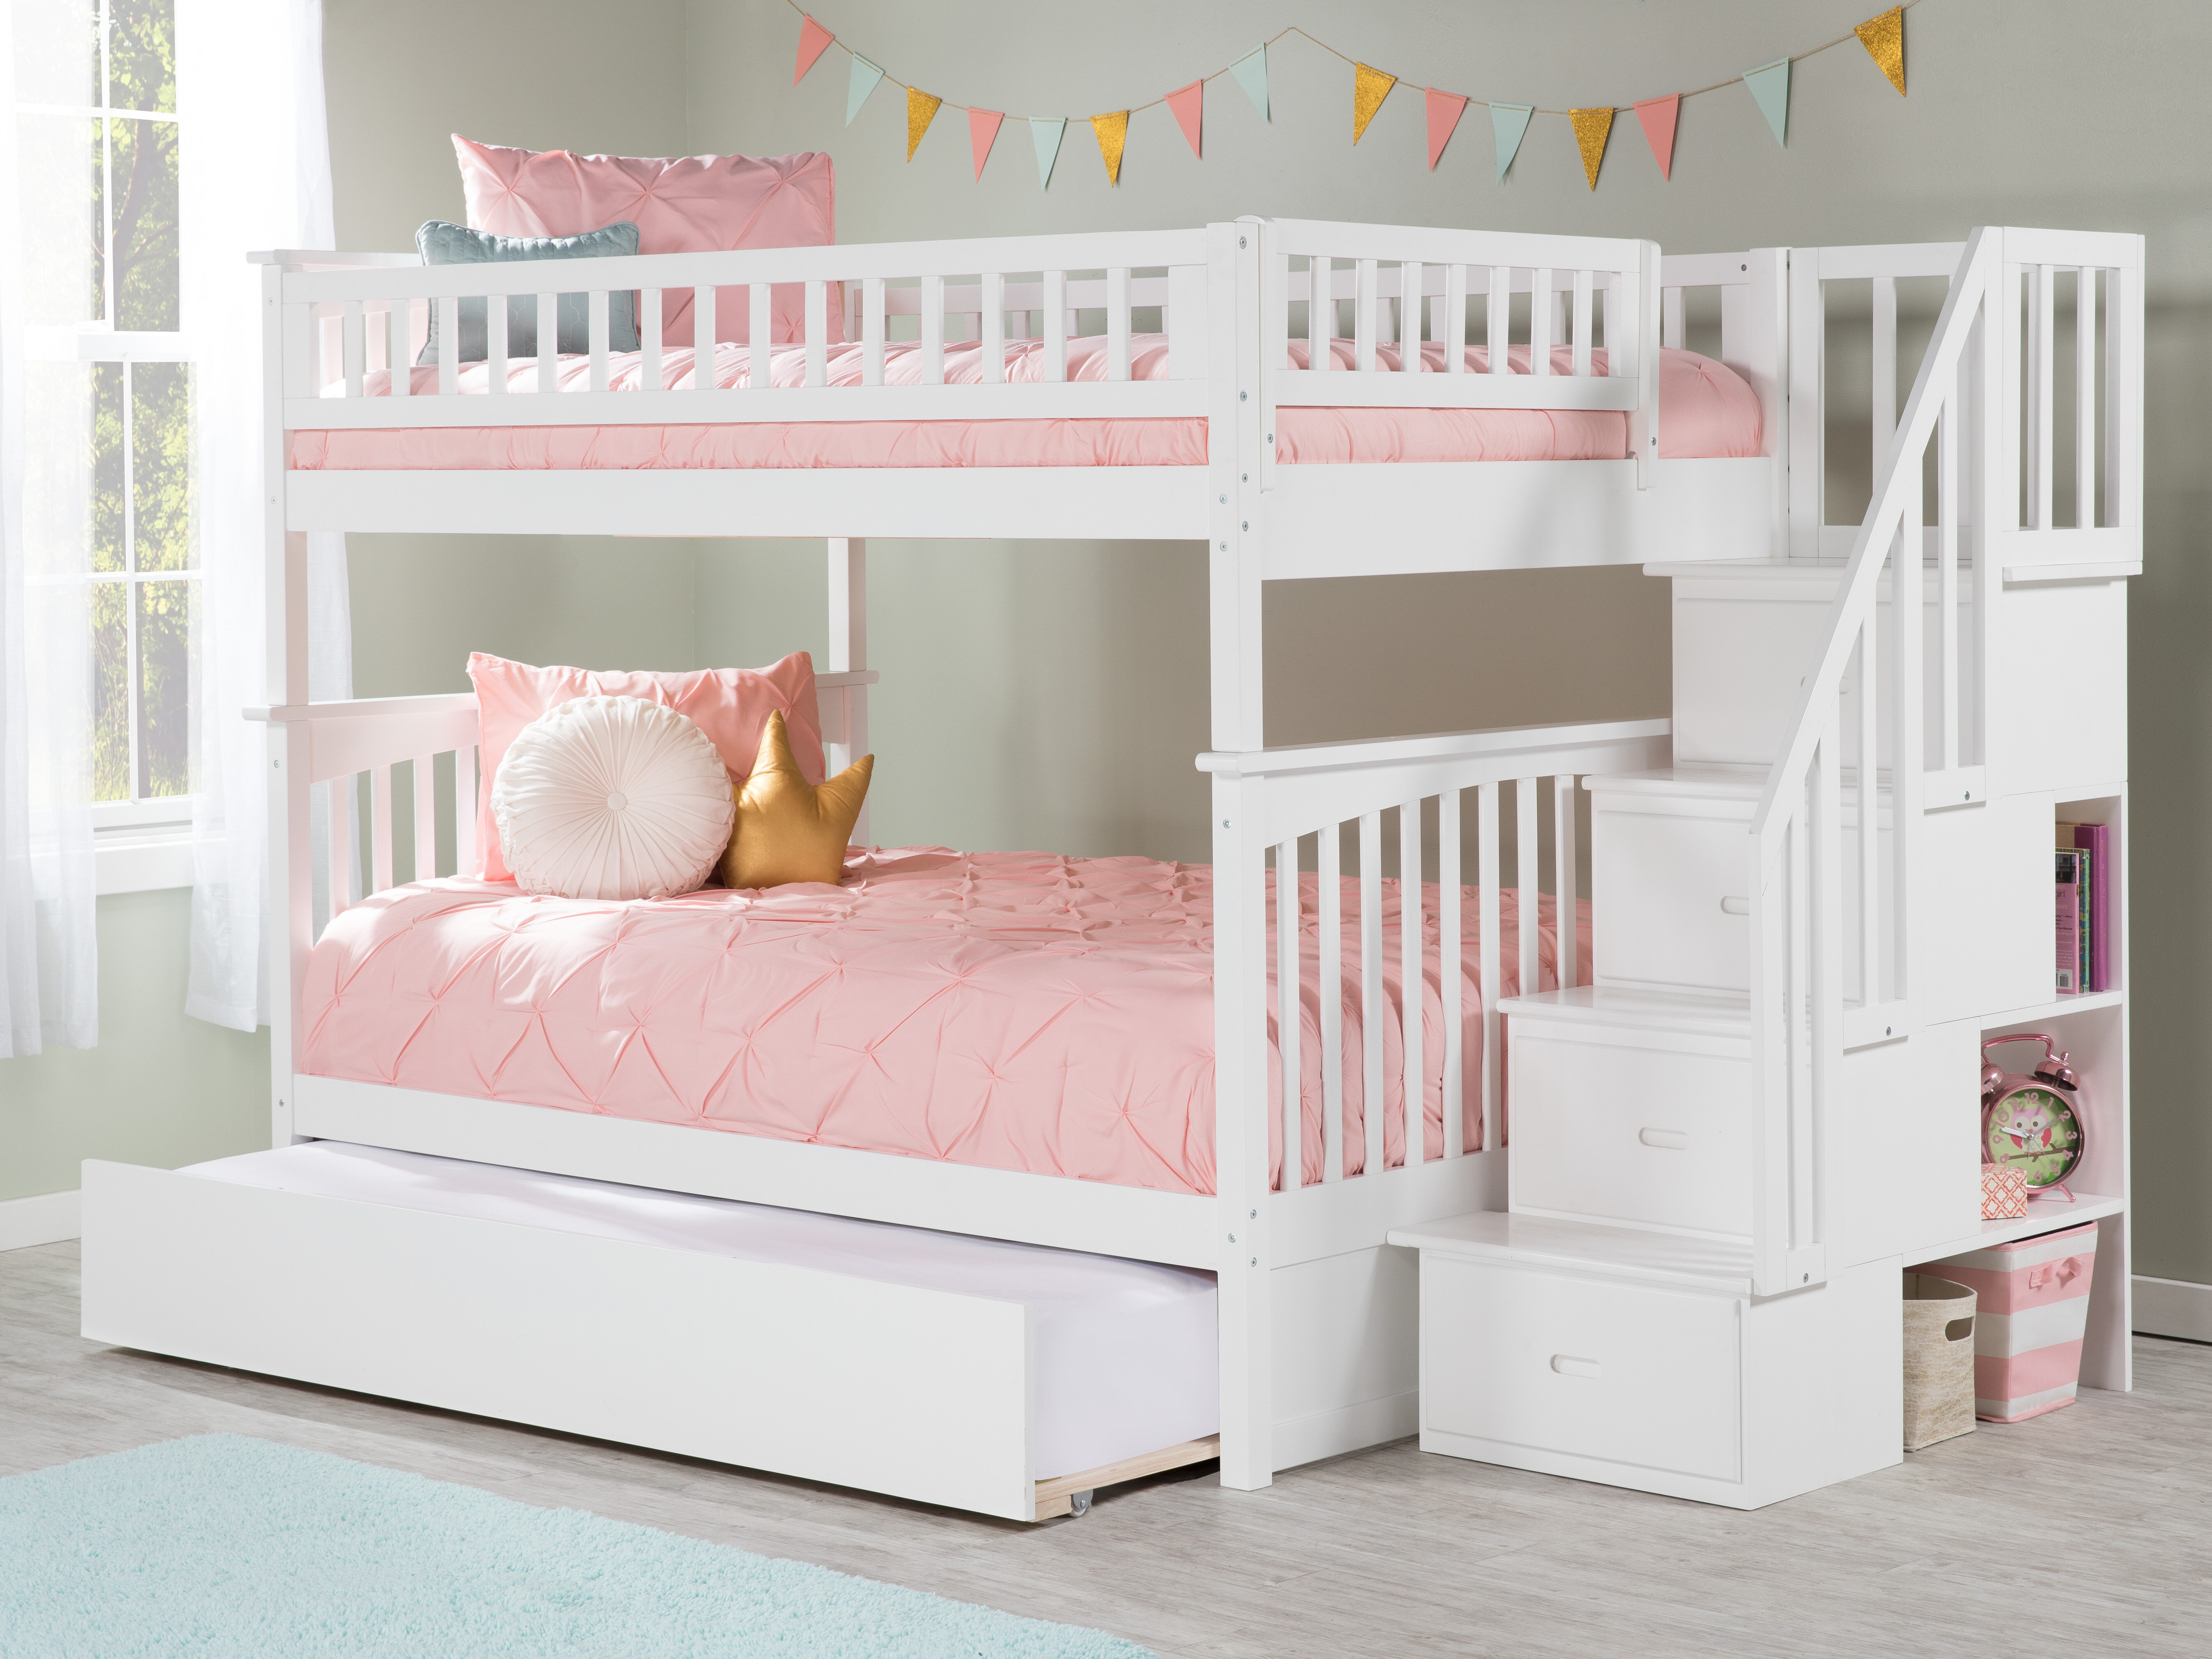 Harriet Bee Abel Staircase Full Over Full Bunk Bed With Trundle Reviews Wayfair